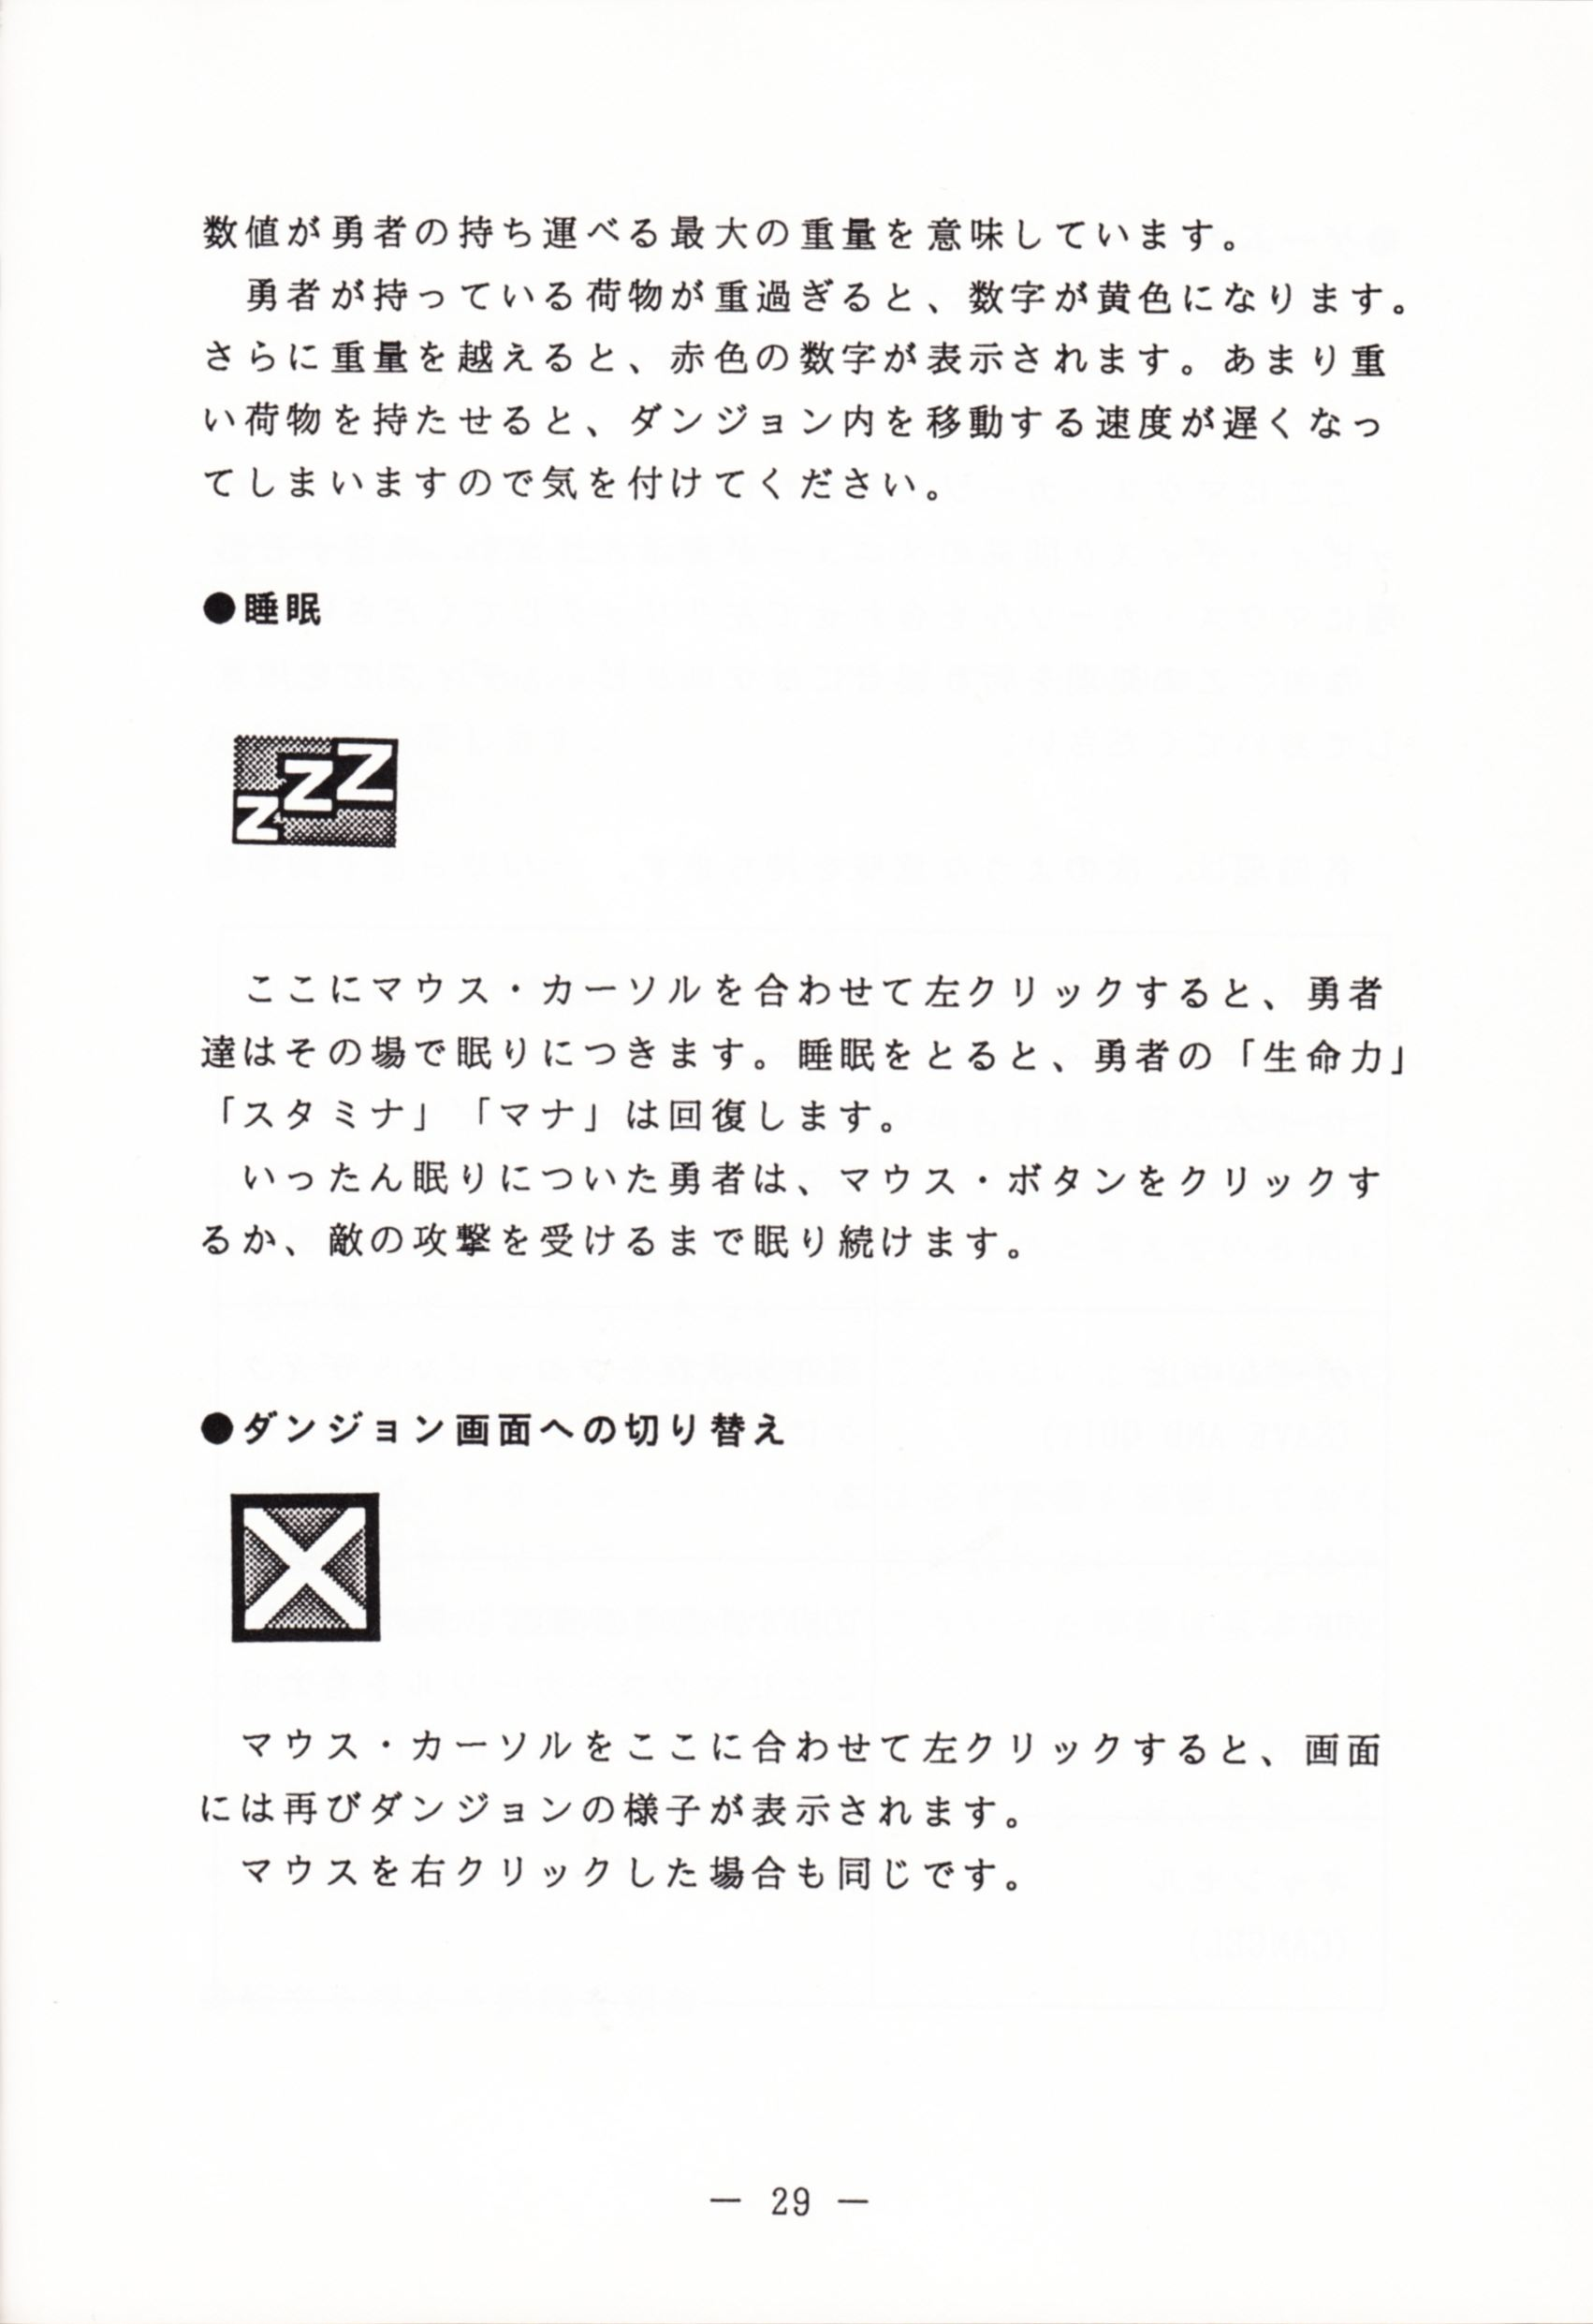 Game - Dungeon Master - JP - FM Towns - Operations Guide - Page 031 - Scan